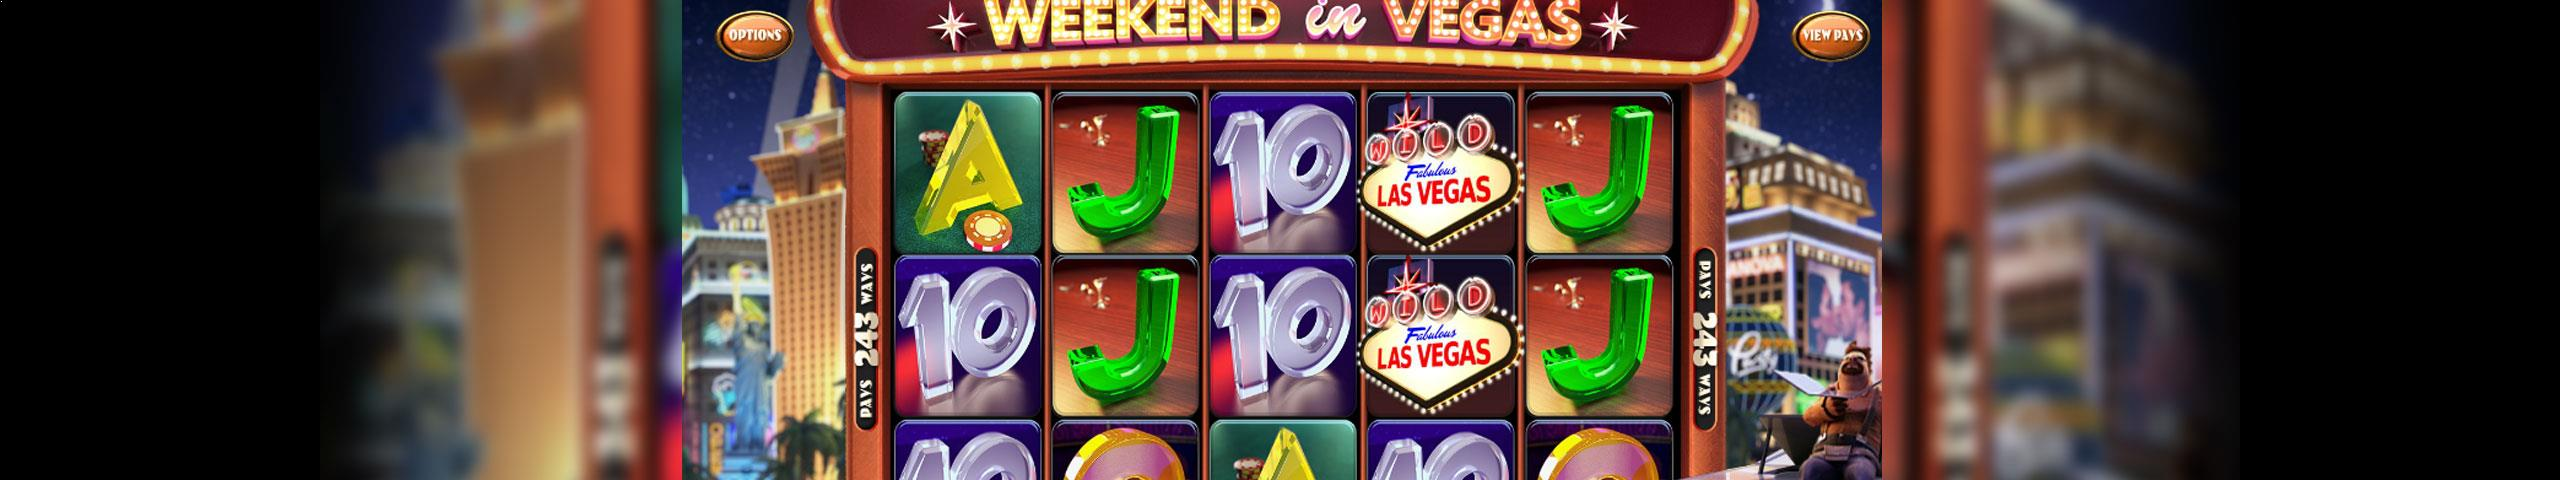 Weekend In Vegas Betsoft jocuri slot slider